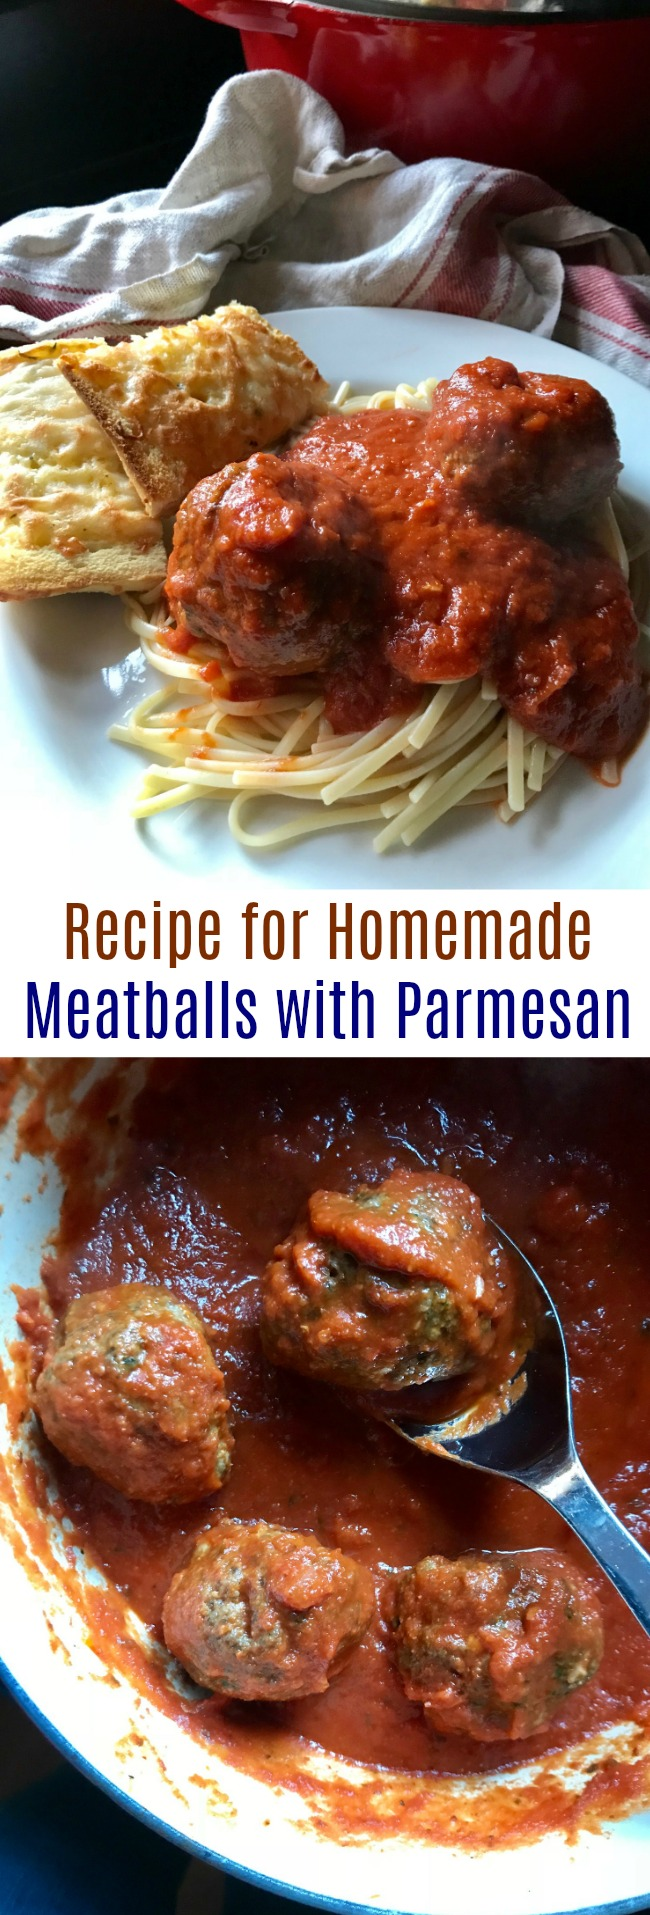 Recipe for Homemade Meatballs with Parmesan